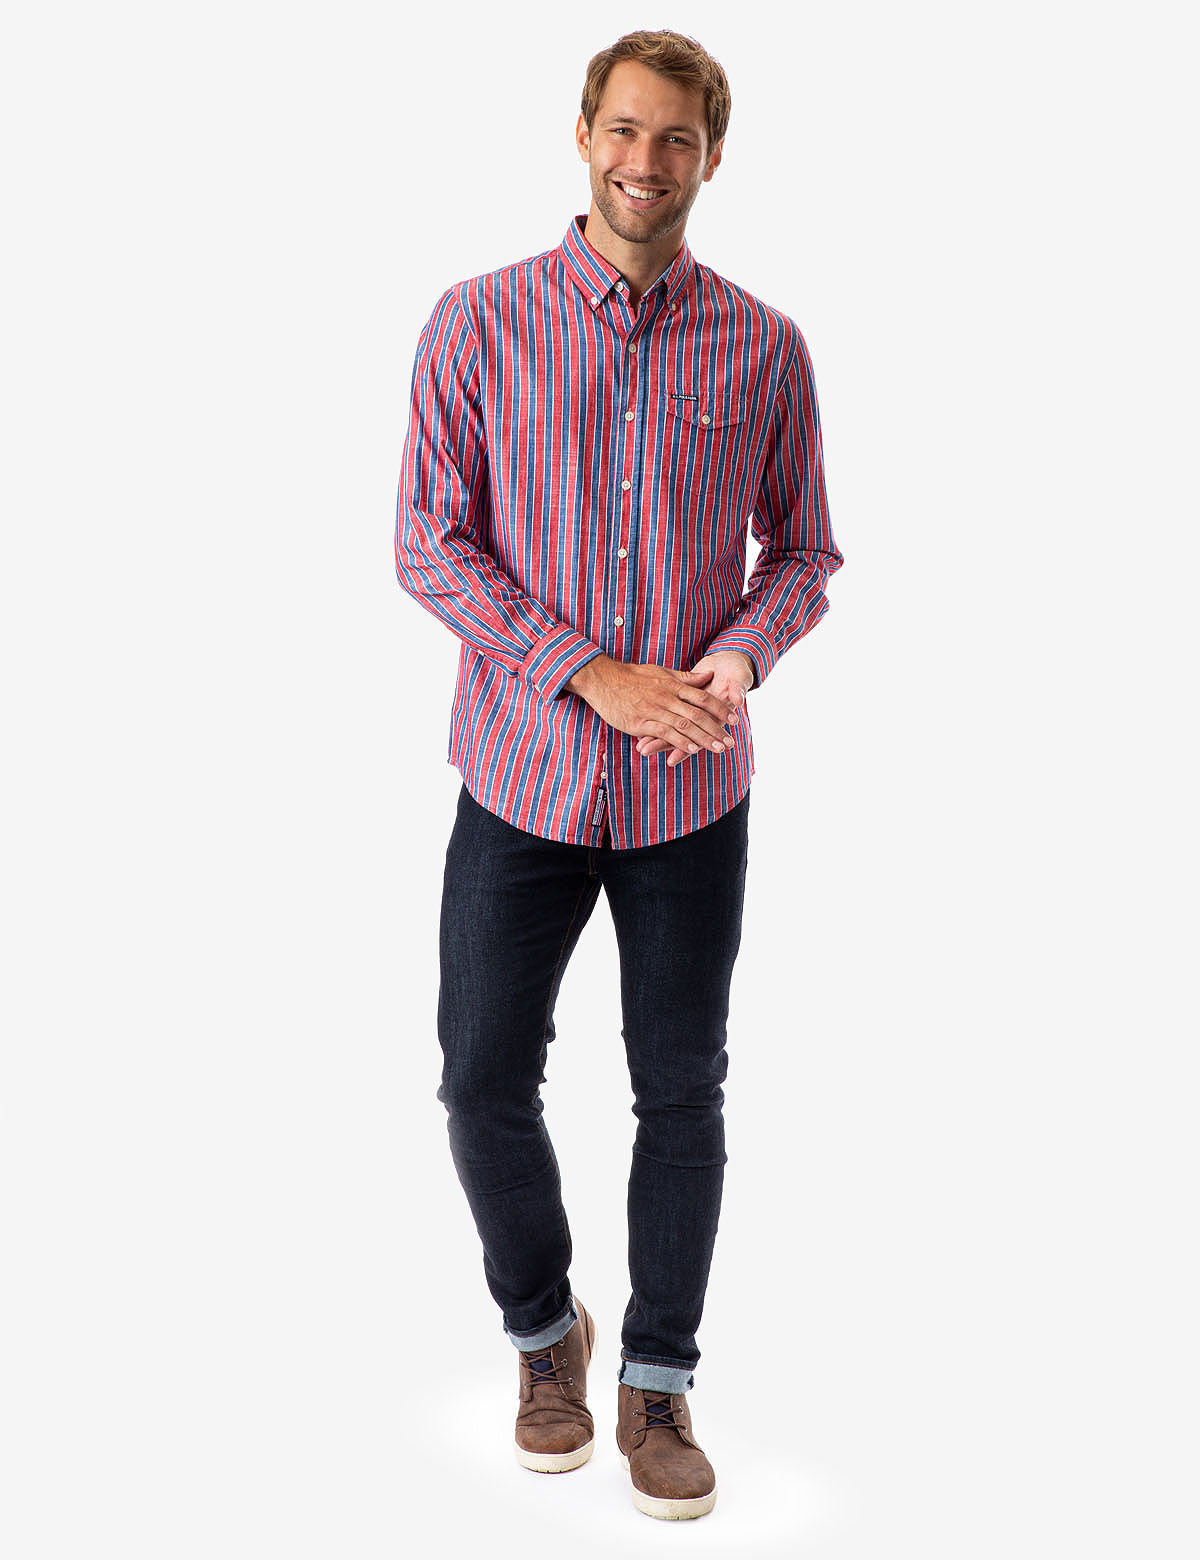 STRIPED TEXTURED POPLIN LONG SLEEVE SHIRT - U.S. Polo Assn.